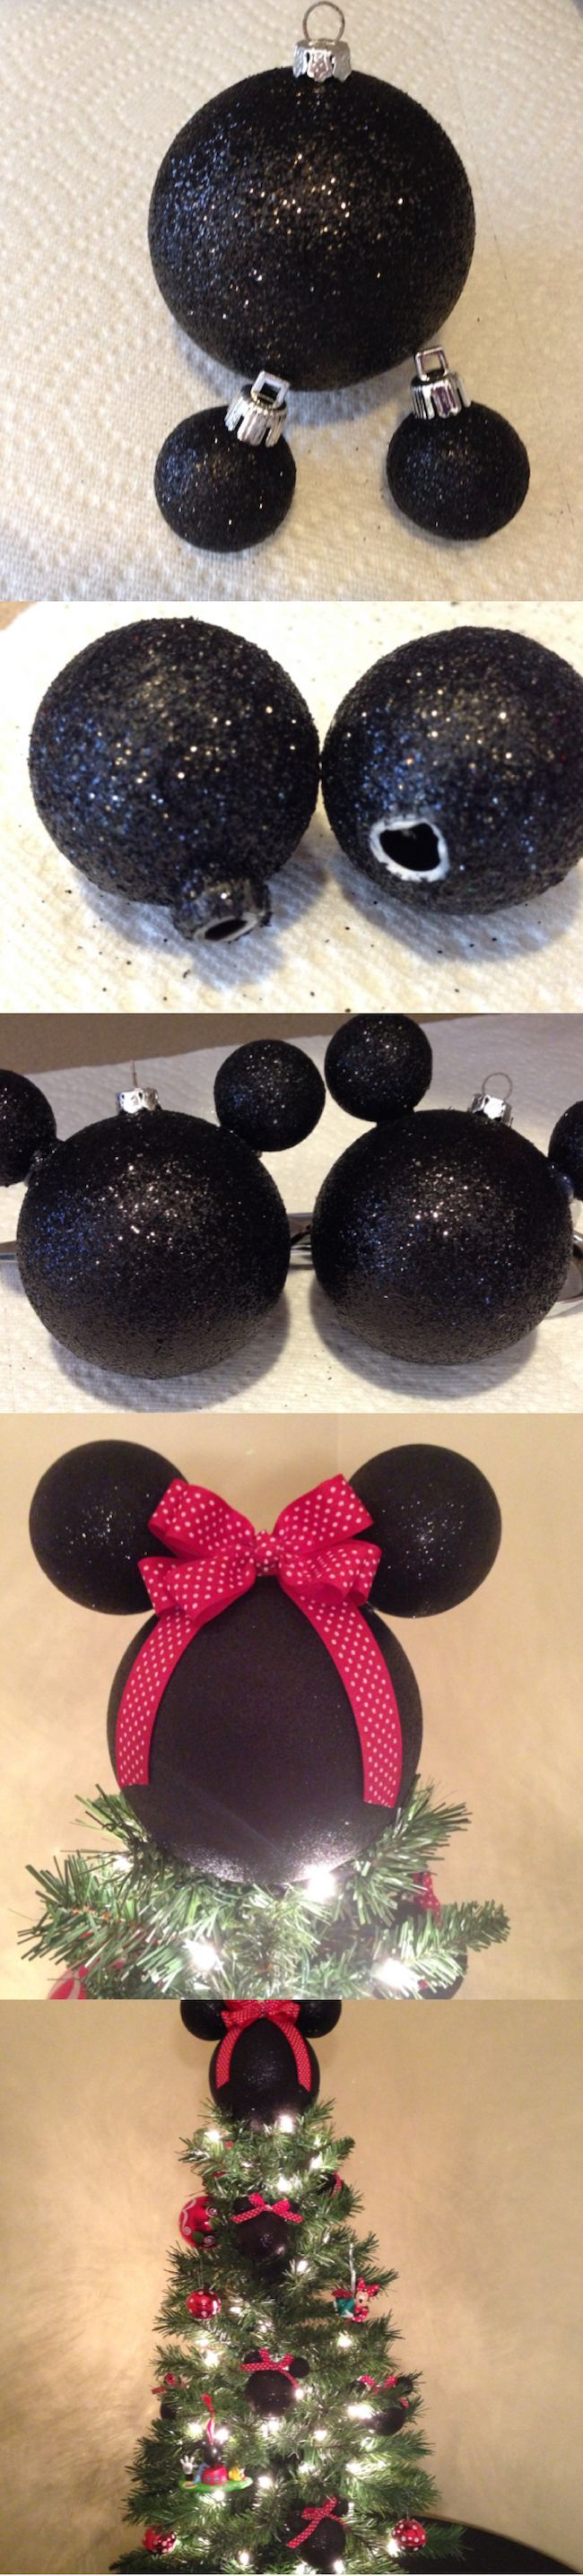 best 25 mickey mouse crafts ideas on pinterest mickey